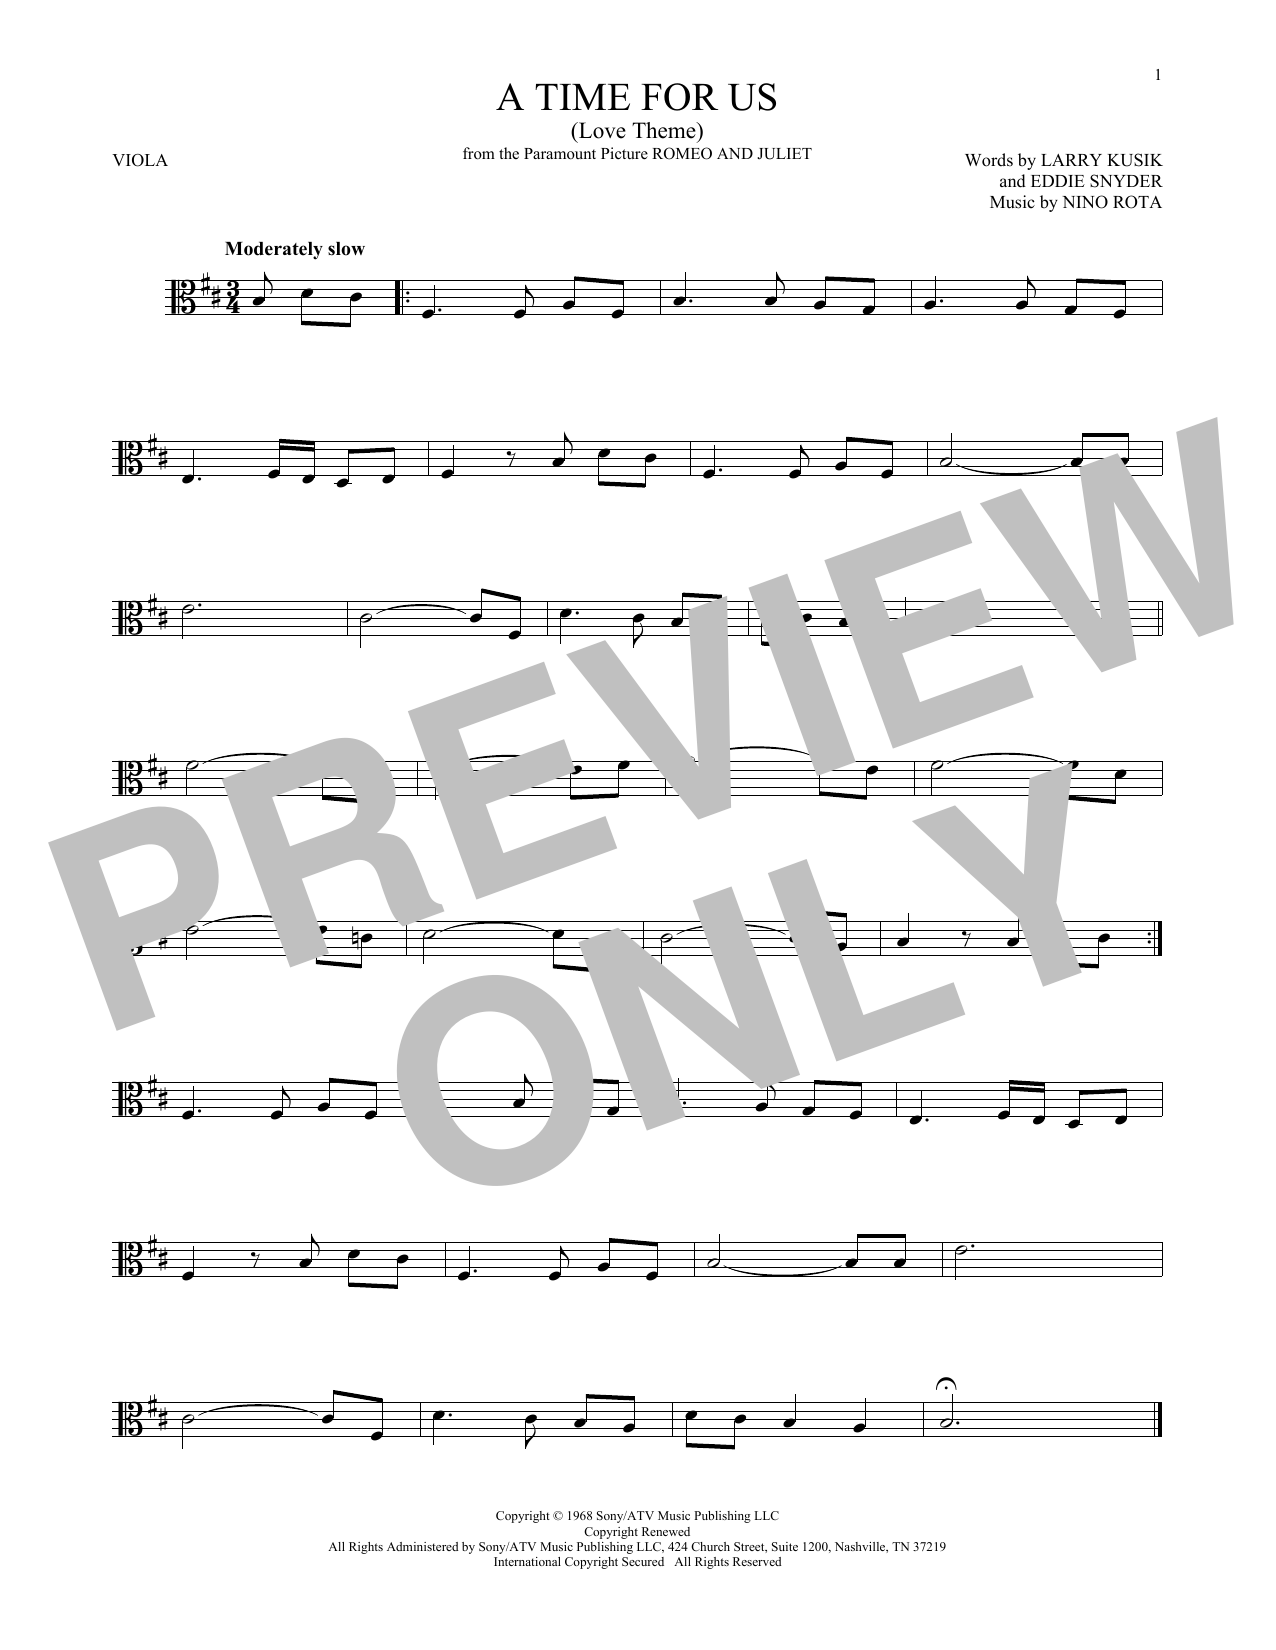 A Time For Us (Love Theme) (Viola Solo)